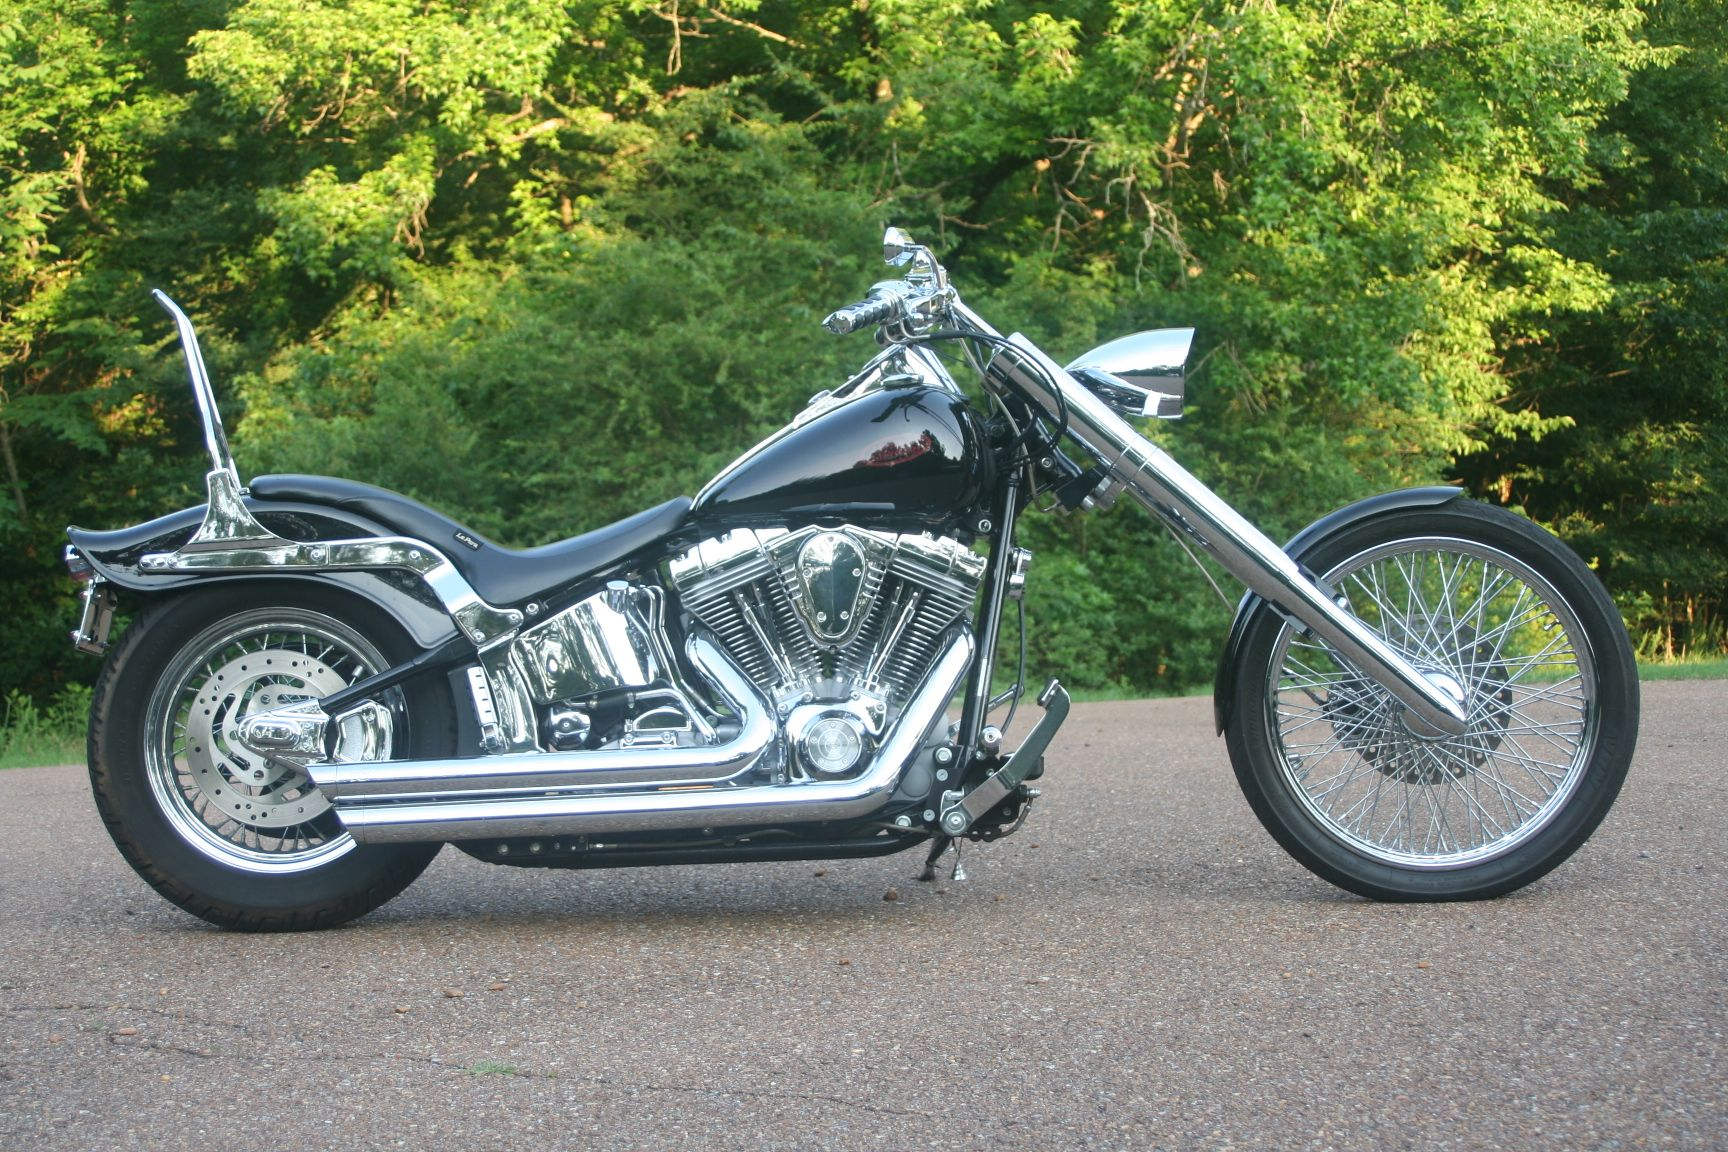 Harley Davidson Choppers - Google Search | Motorcycles ...